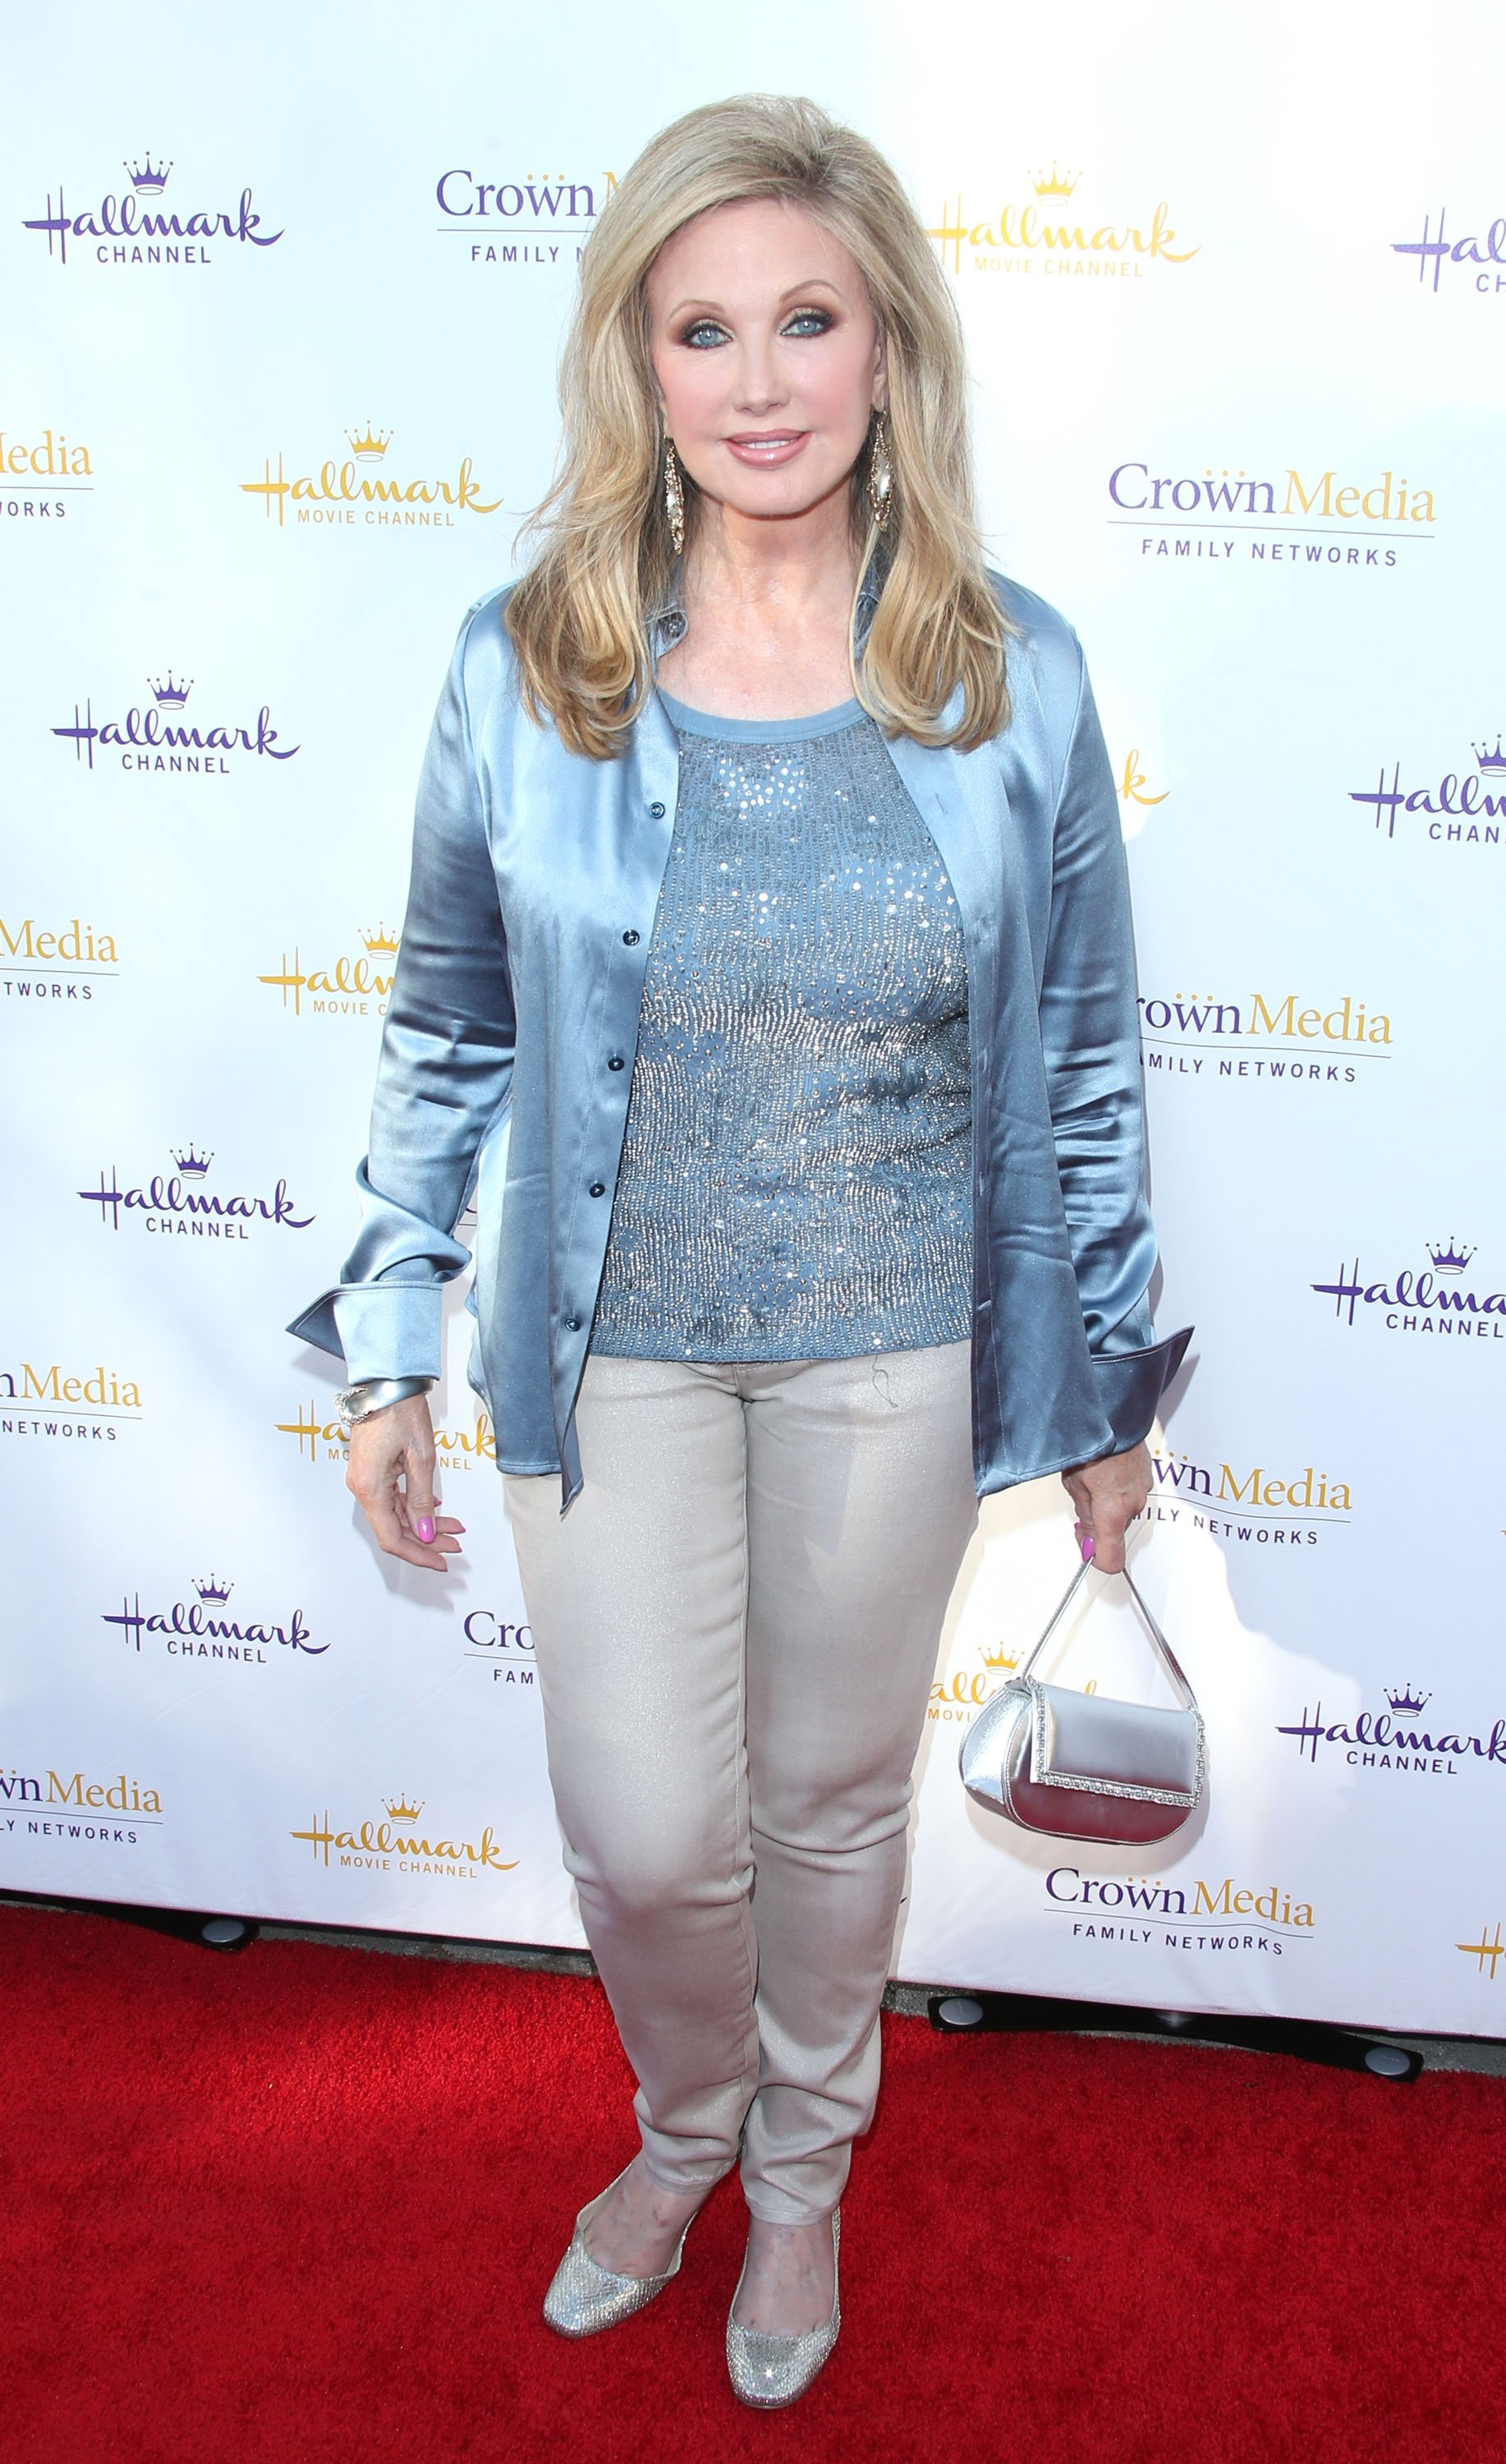 Morgan Fairchild attends the Hallmark Channel & Hallmark Movie Channel's 2014 Summer TCA Party on July 8, 2014 | Photo: GettyImages